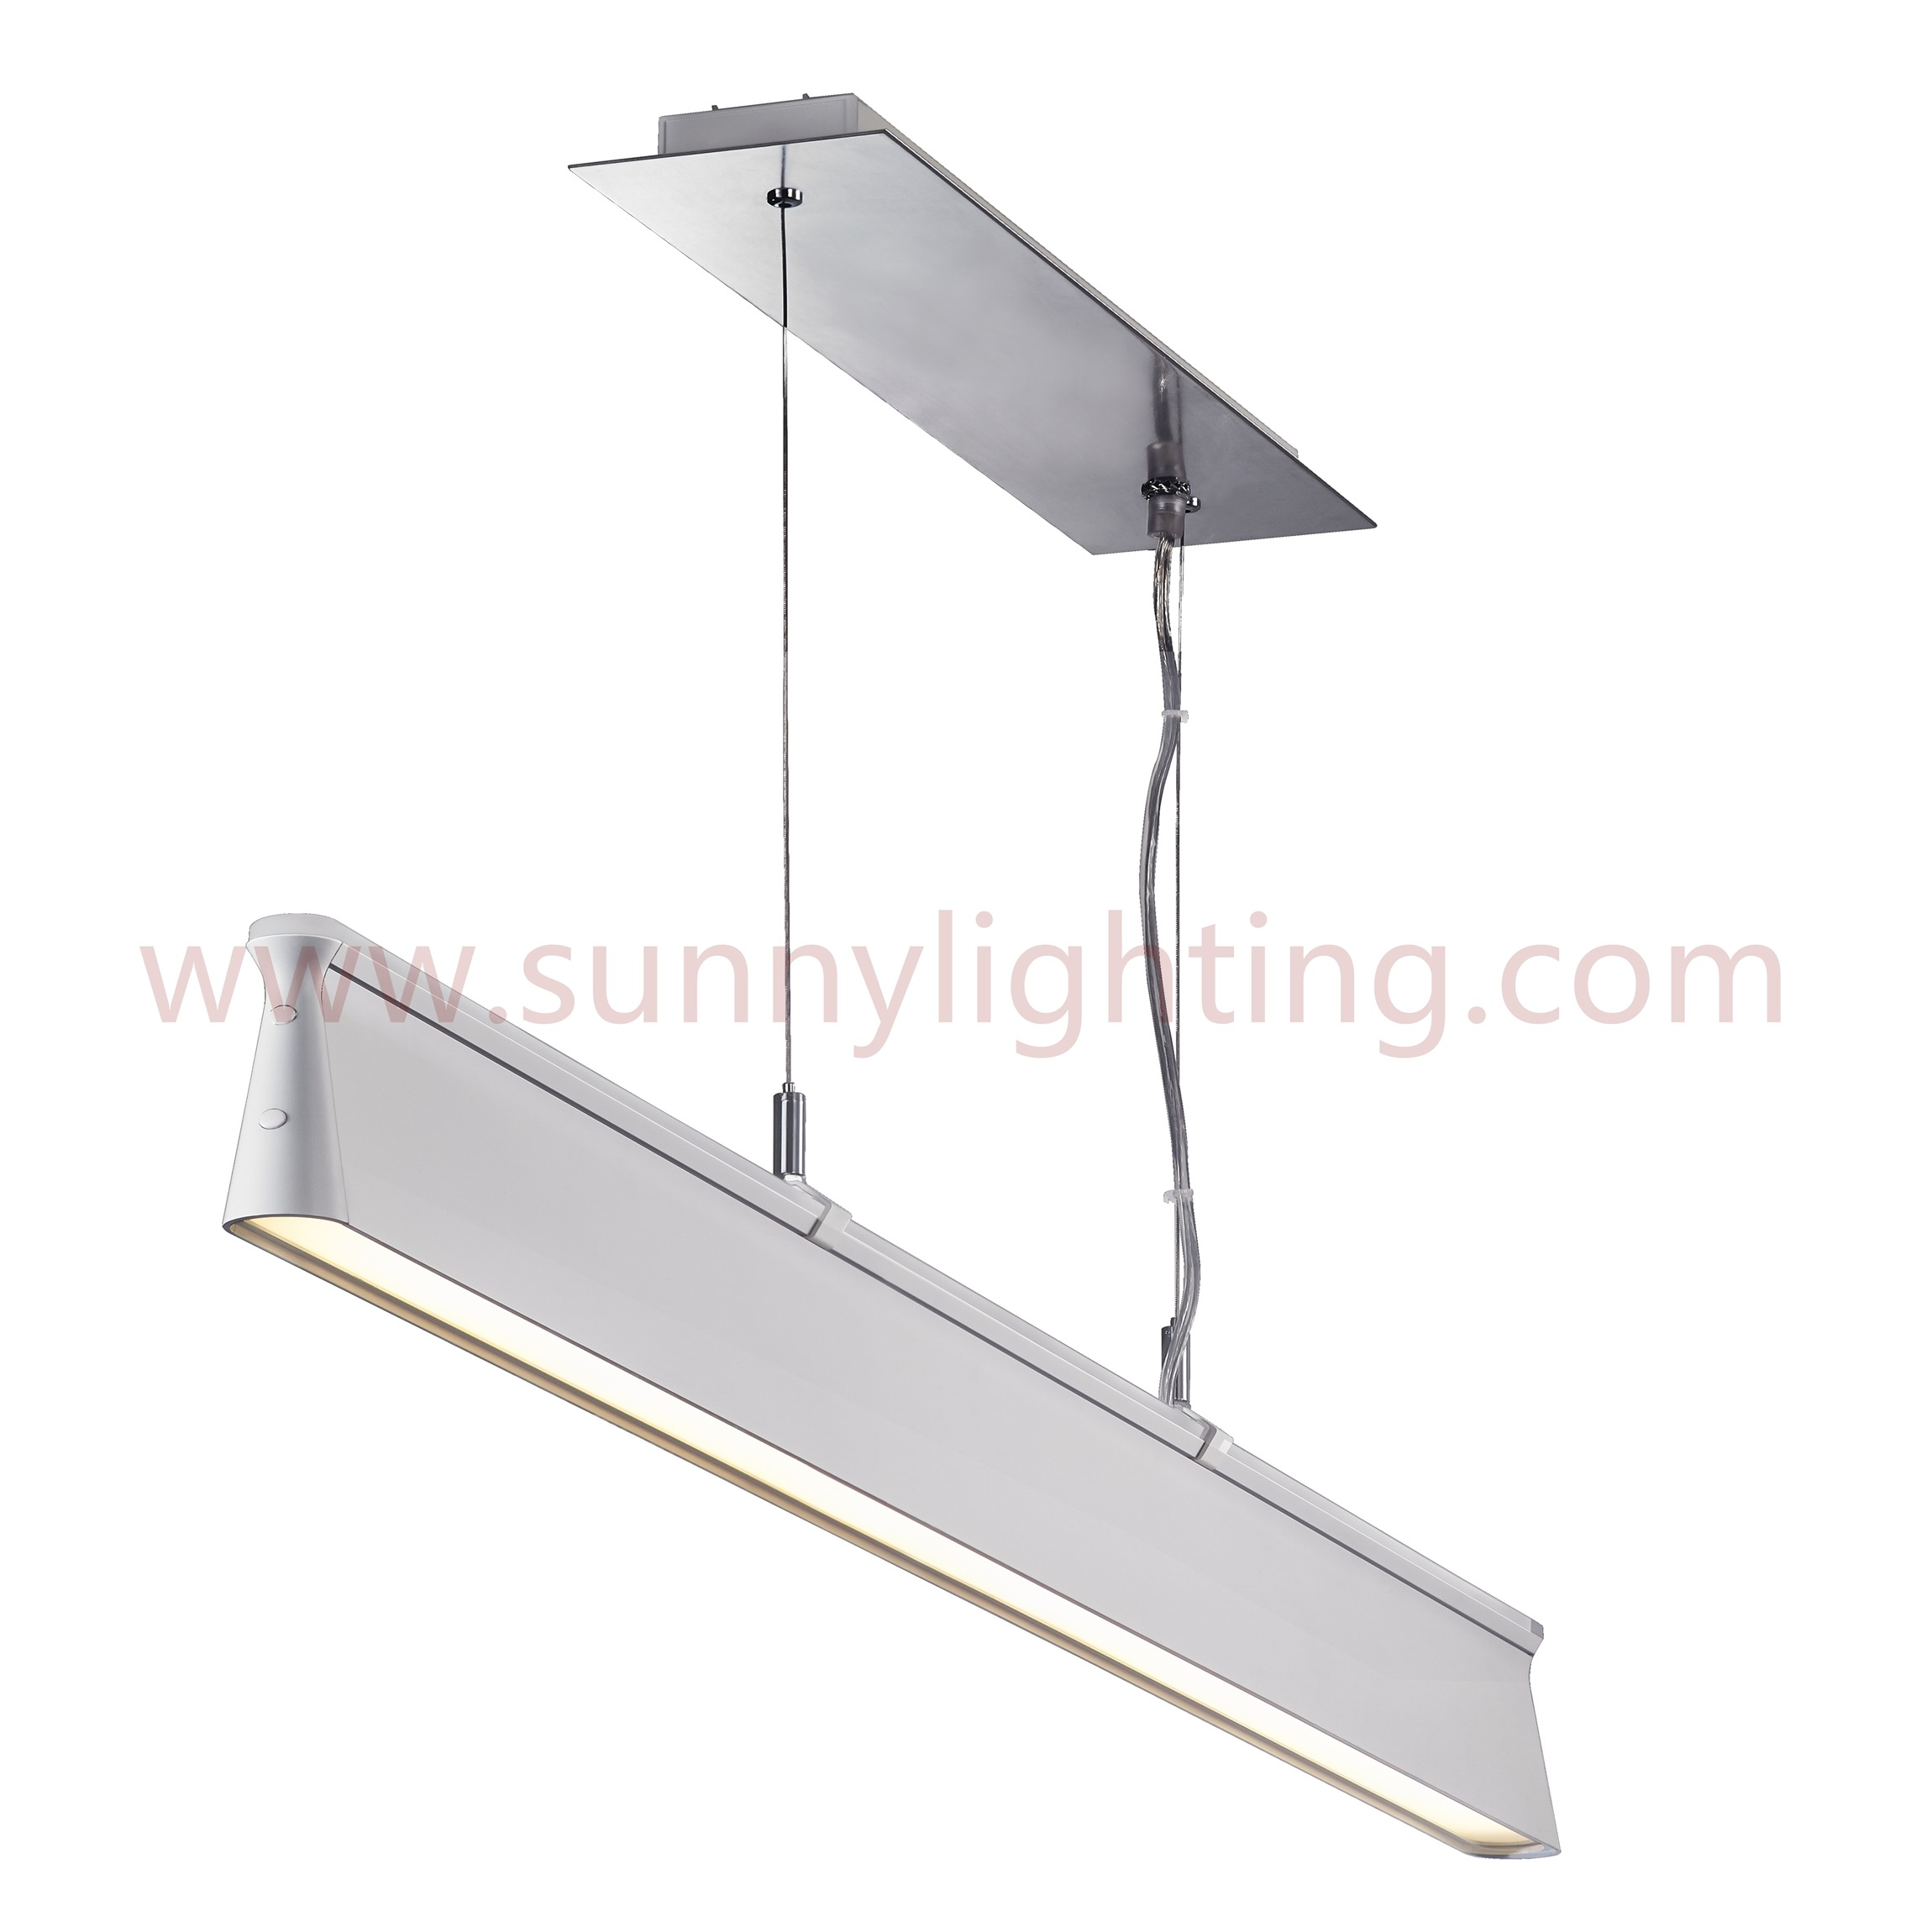 LED Linear Light 21.6/28.8W/36W LED-067